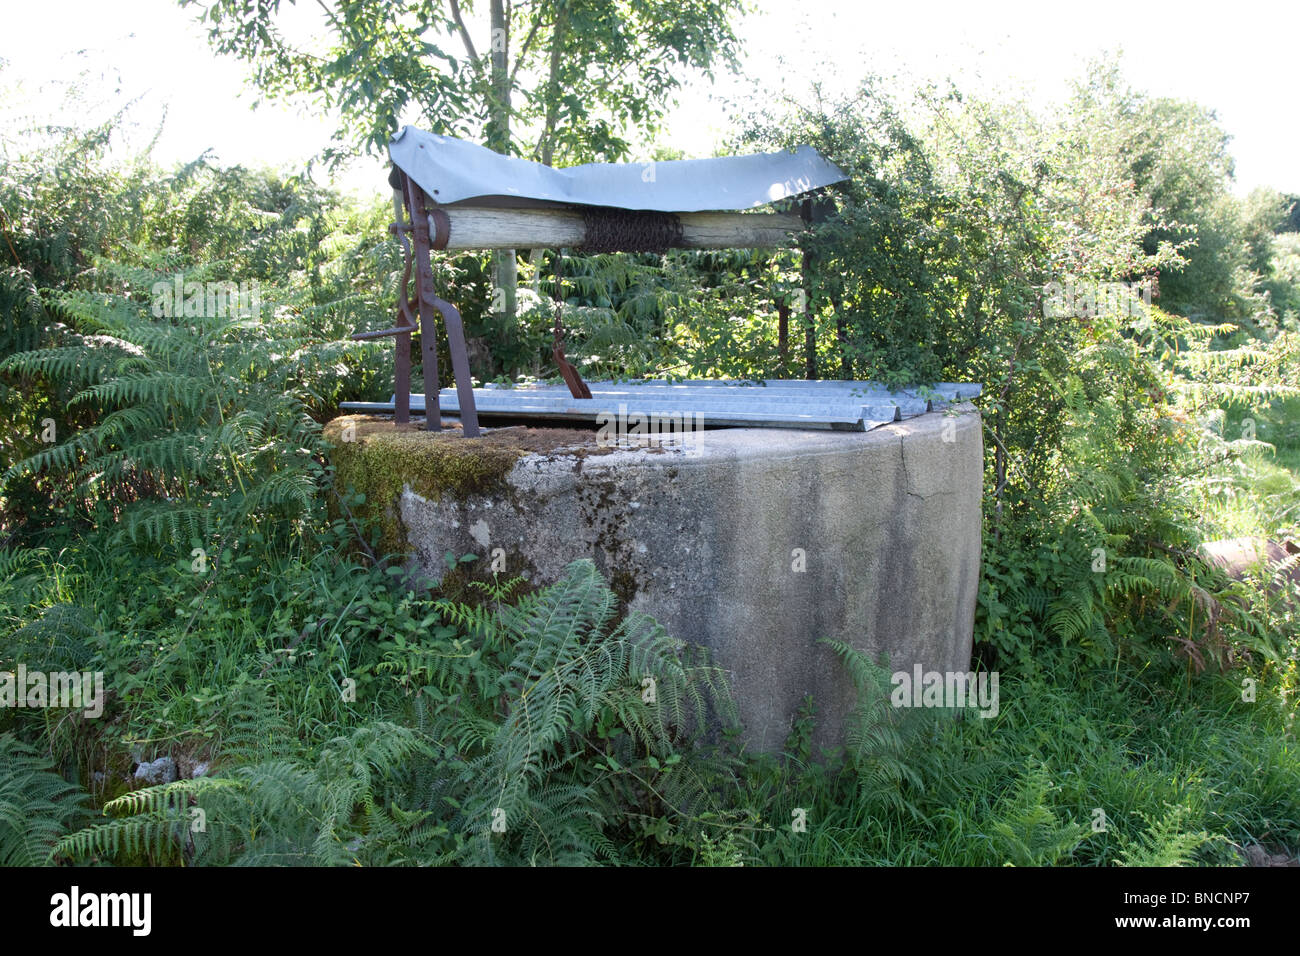 Farm well in the Auvergne, France. - Stock Image